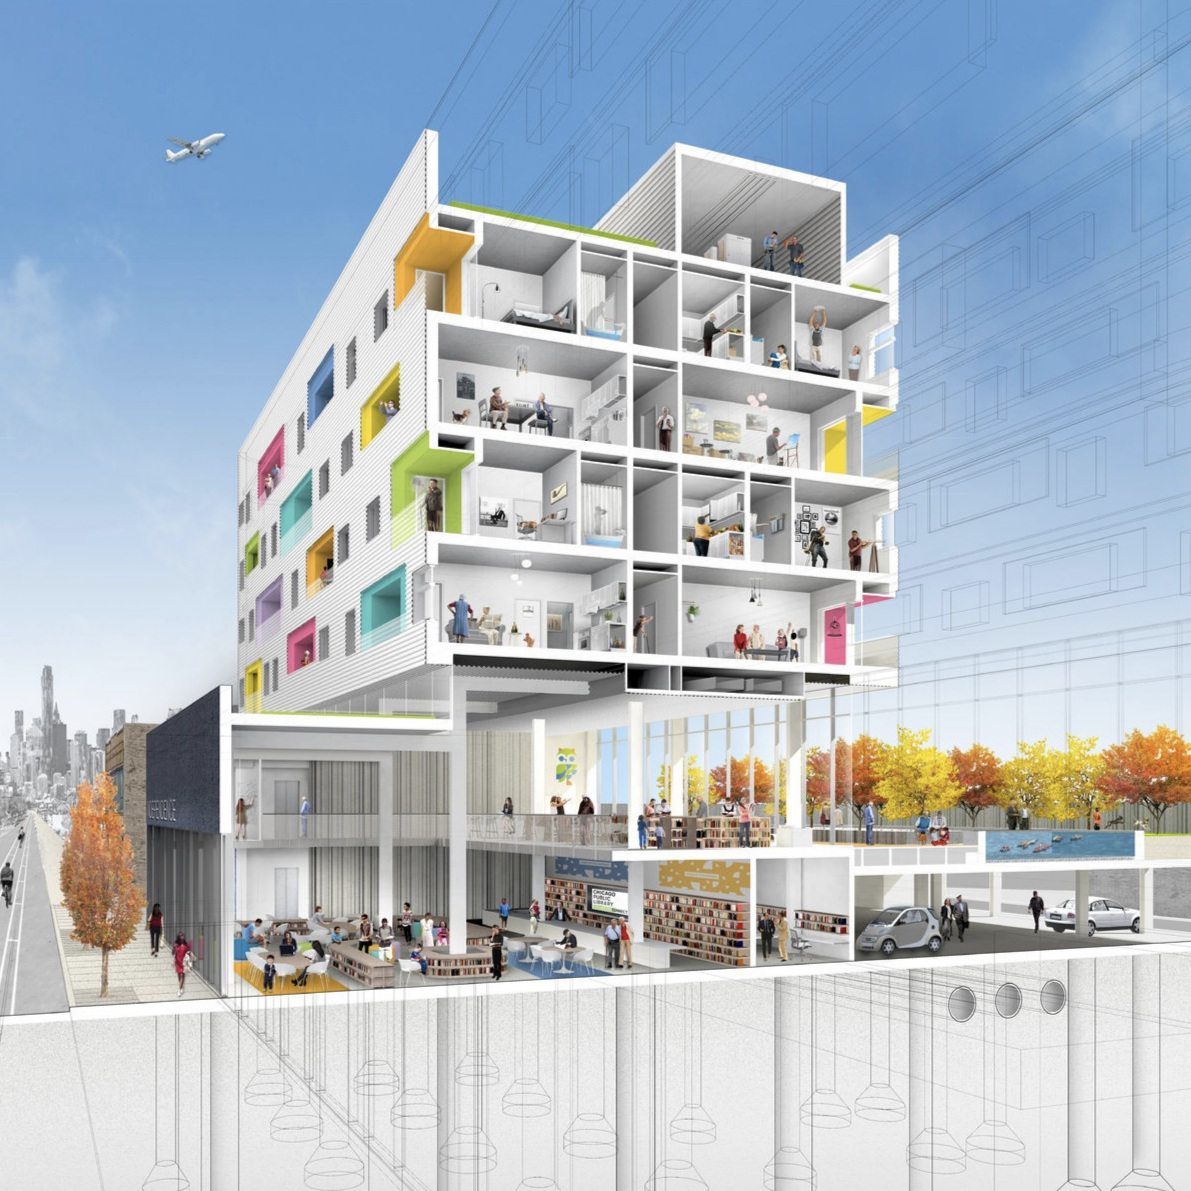 Chicago Builds Public Housing into Libraries. - Healthy neighborhood housing based on books.